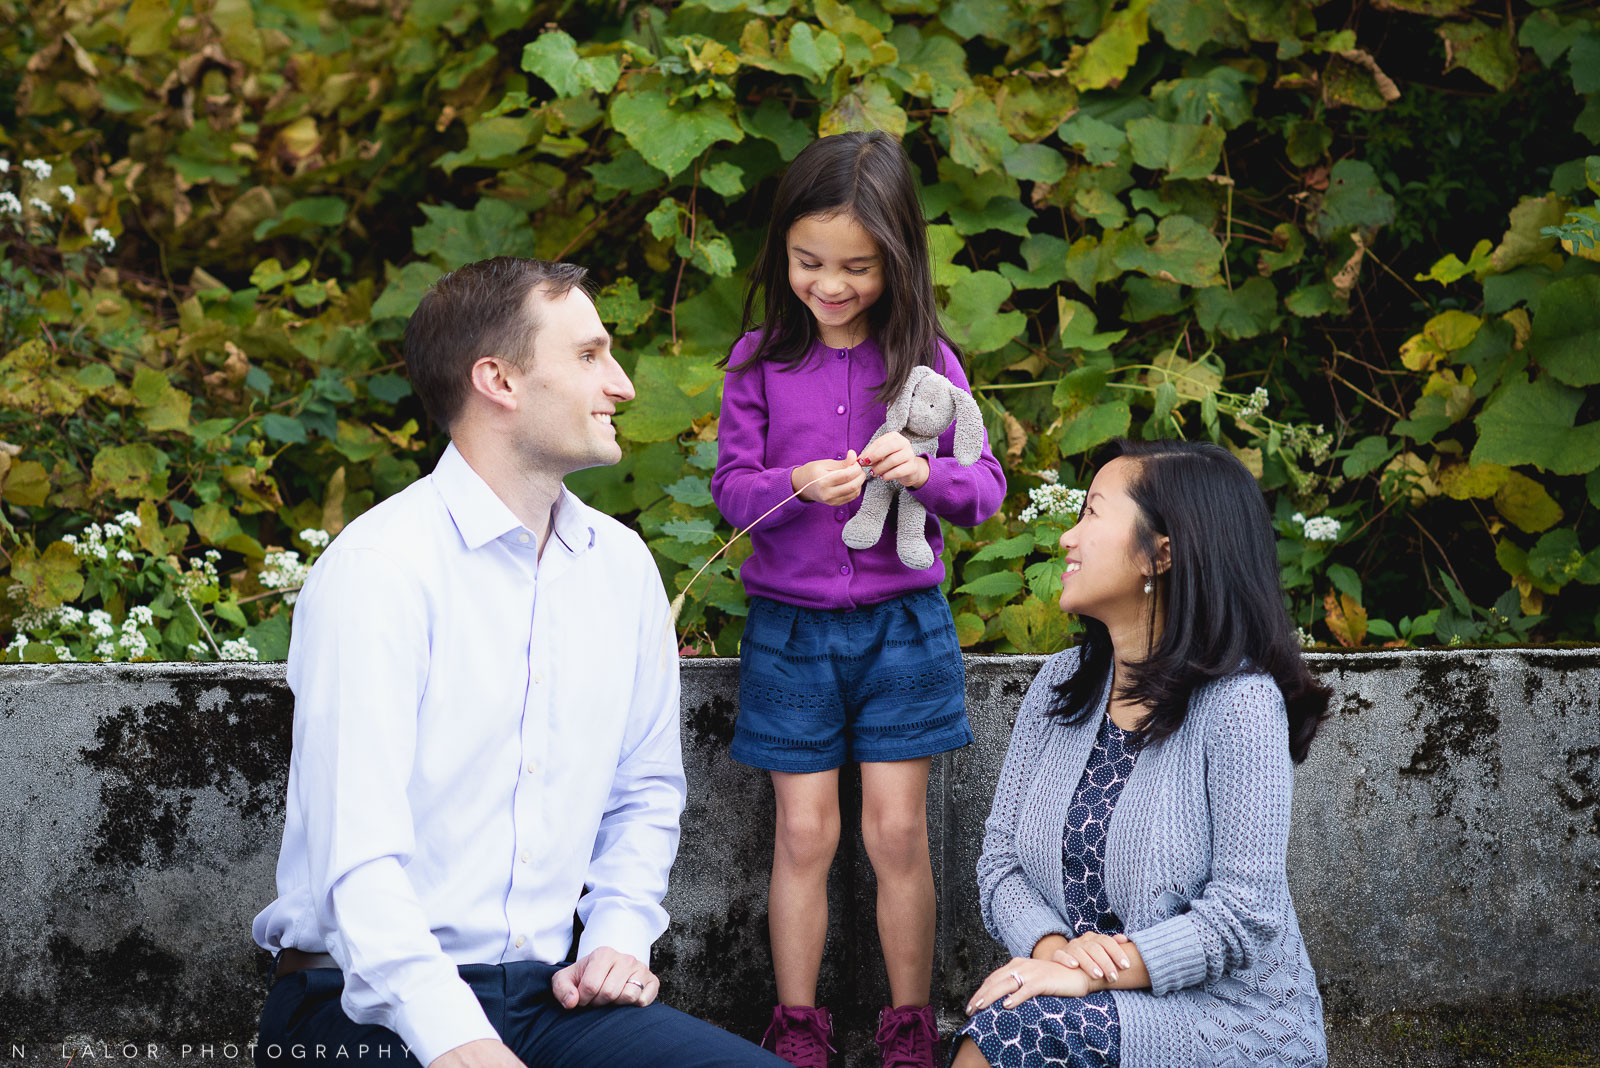 Lifestyle family portrait by N. Lalor Photography. Waveny Park, New Canaan, Connecticut.